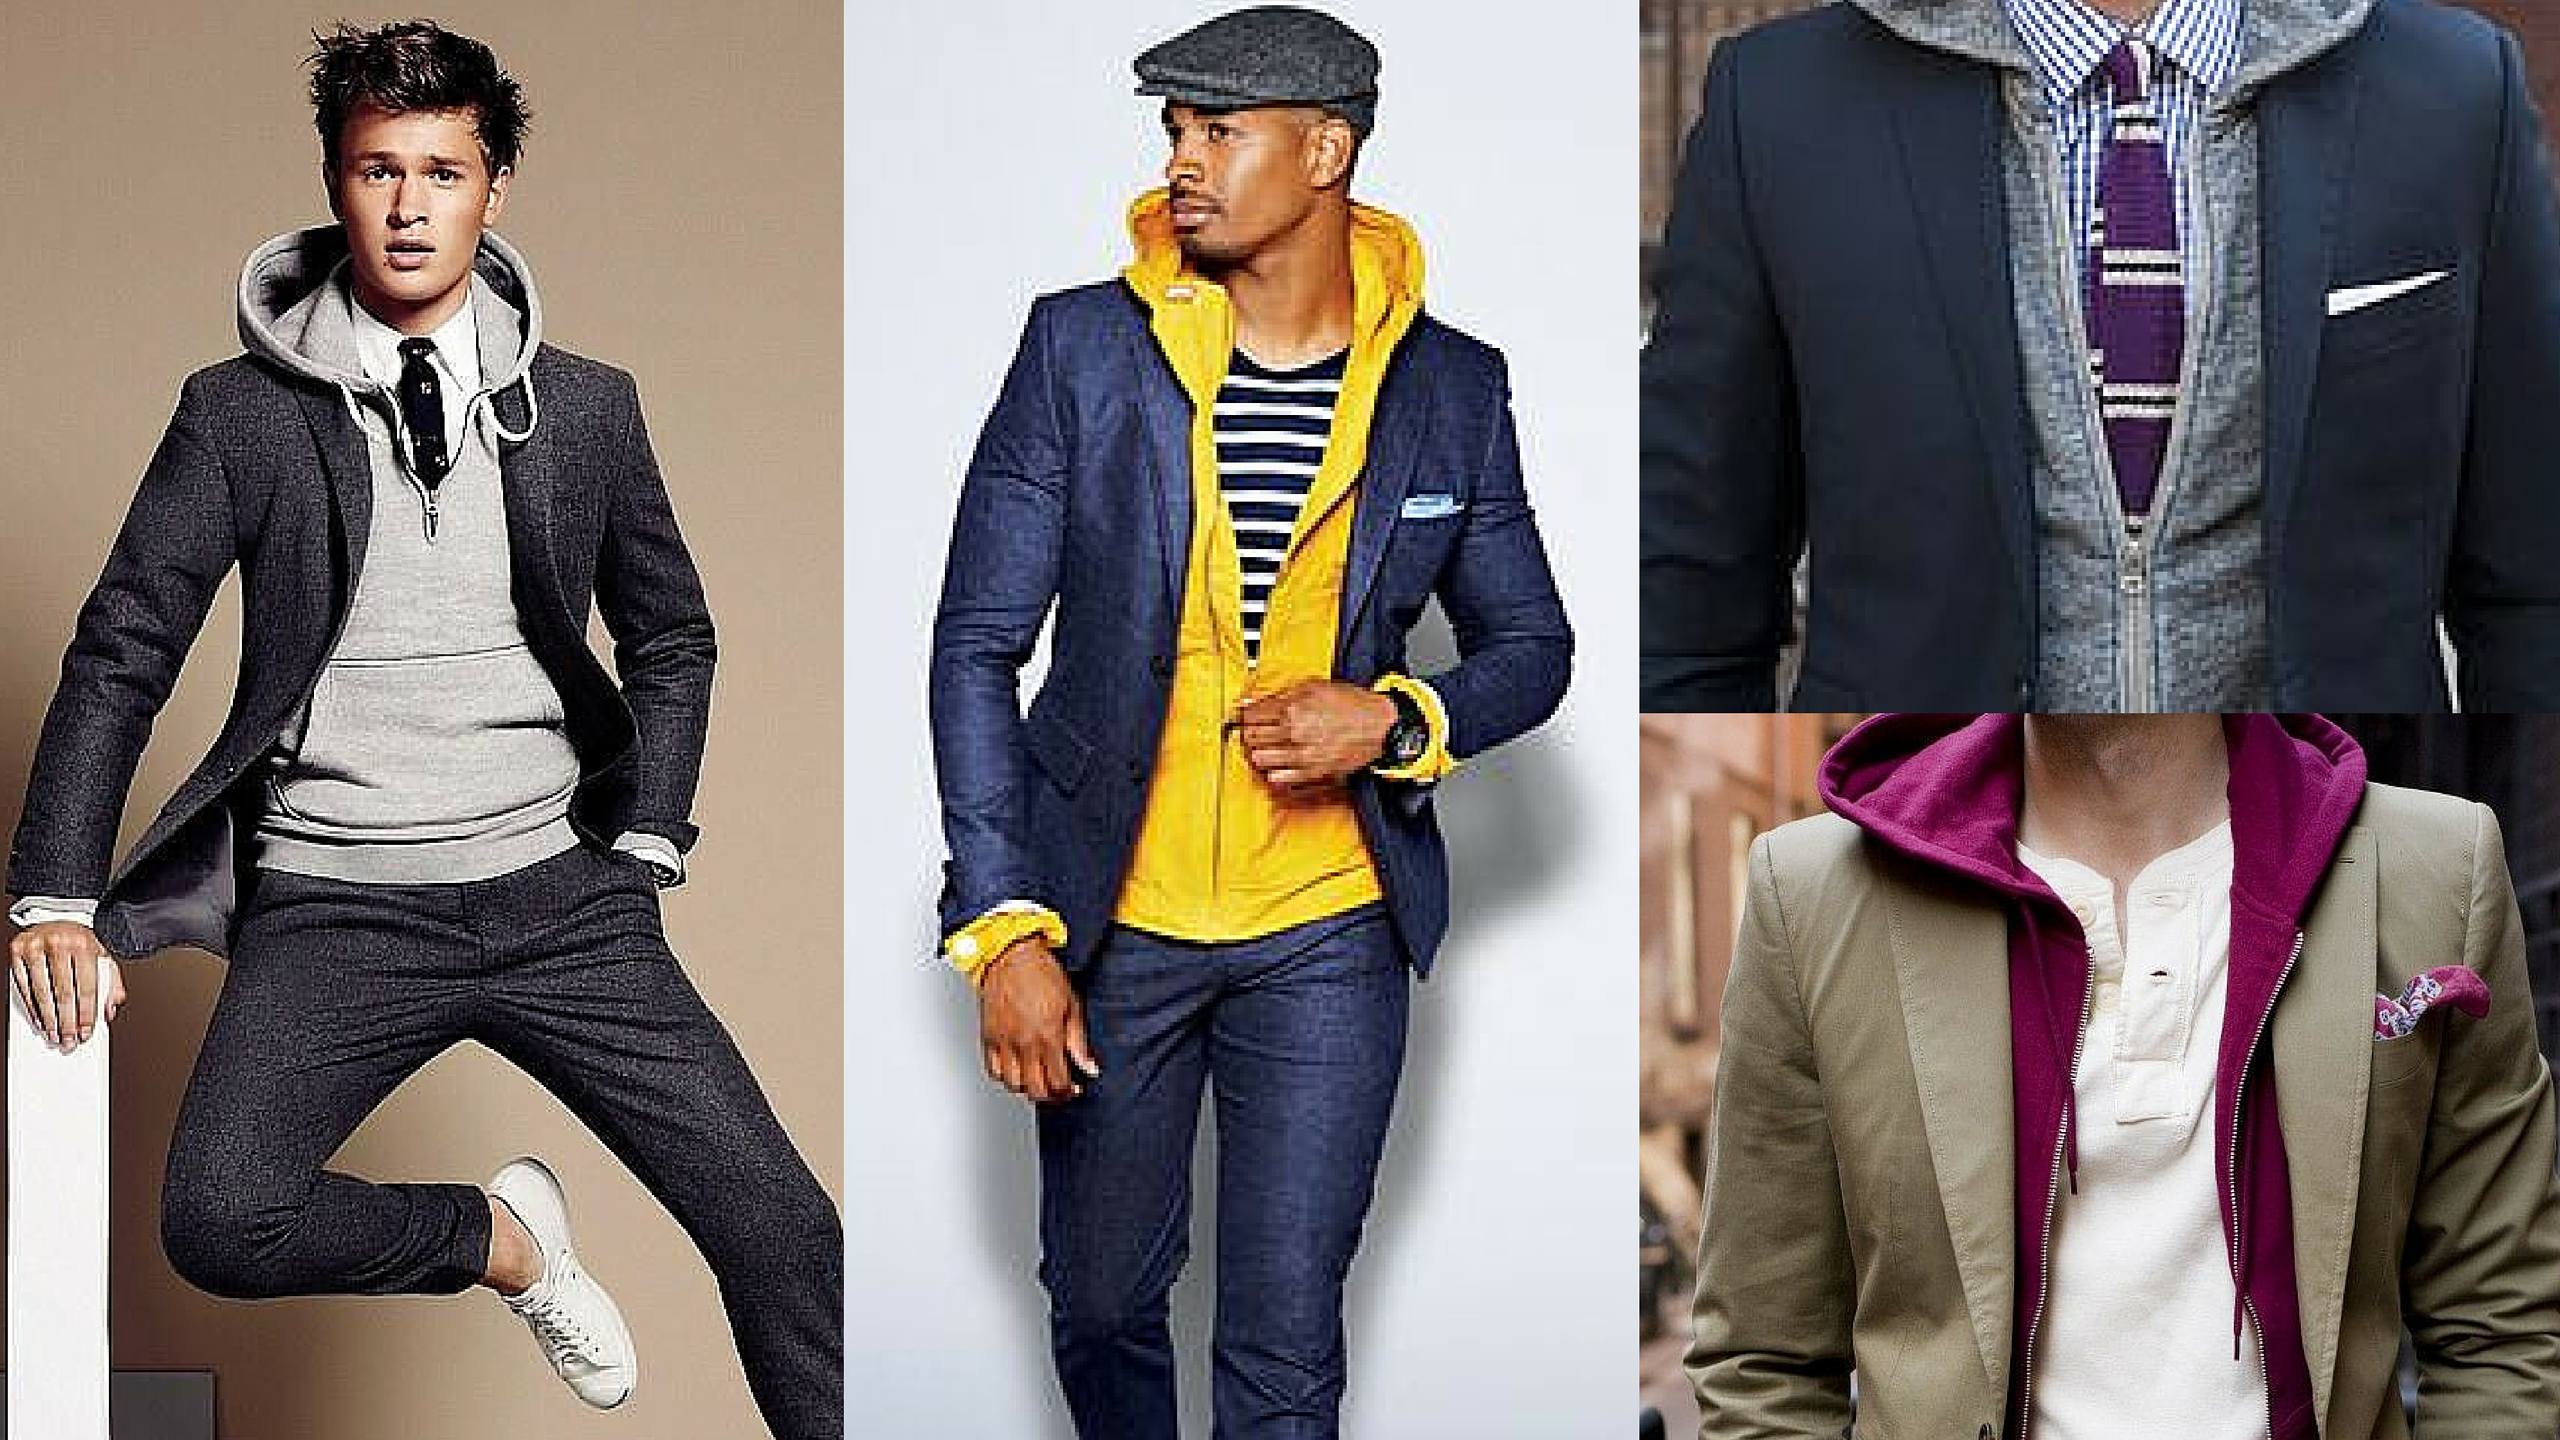 Steal His Look #Menswear-Ready Hoodie Under a Suit | Style Girlfriend